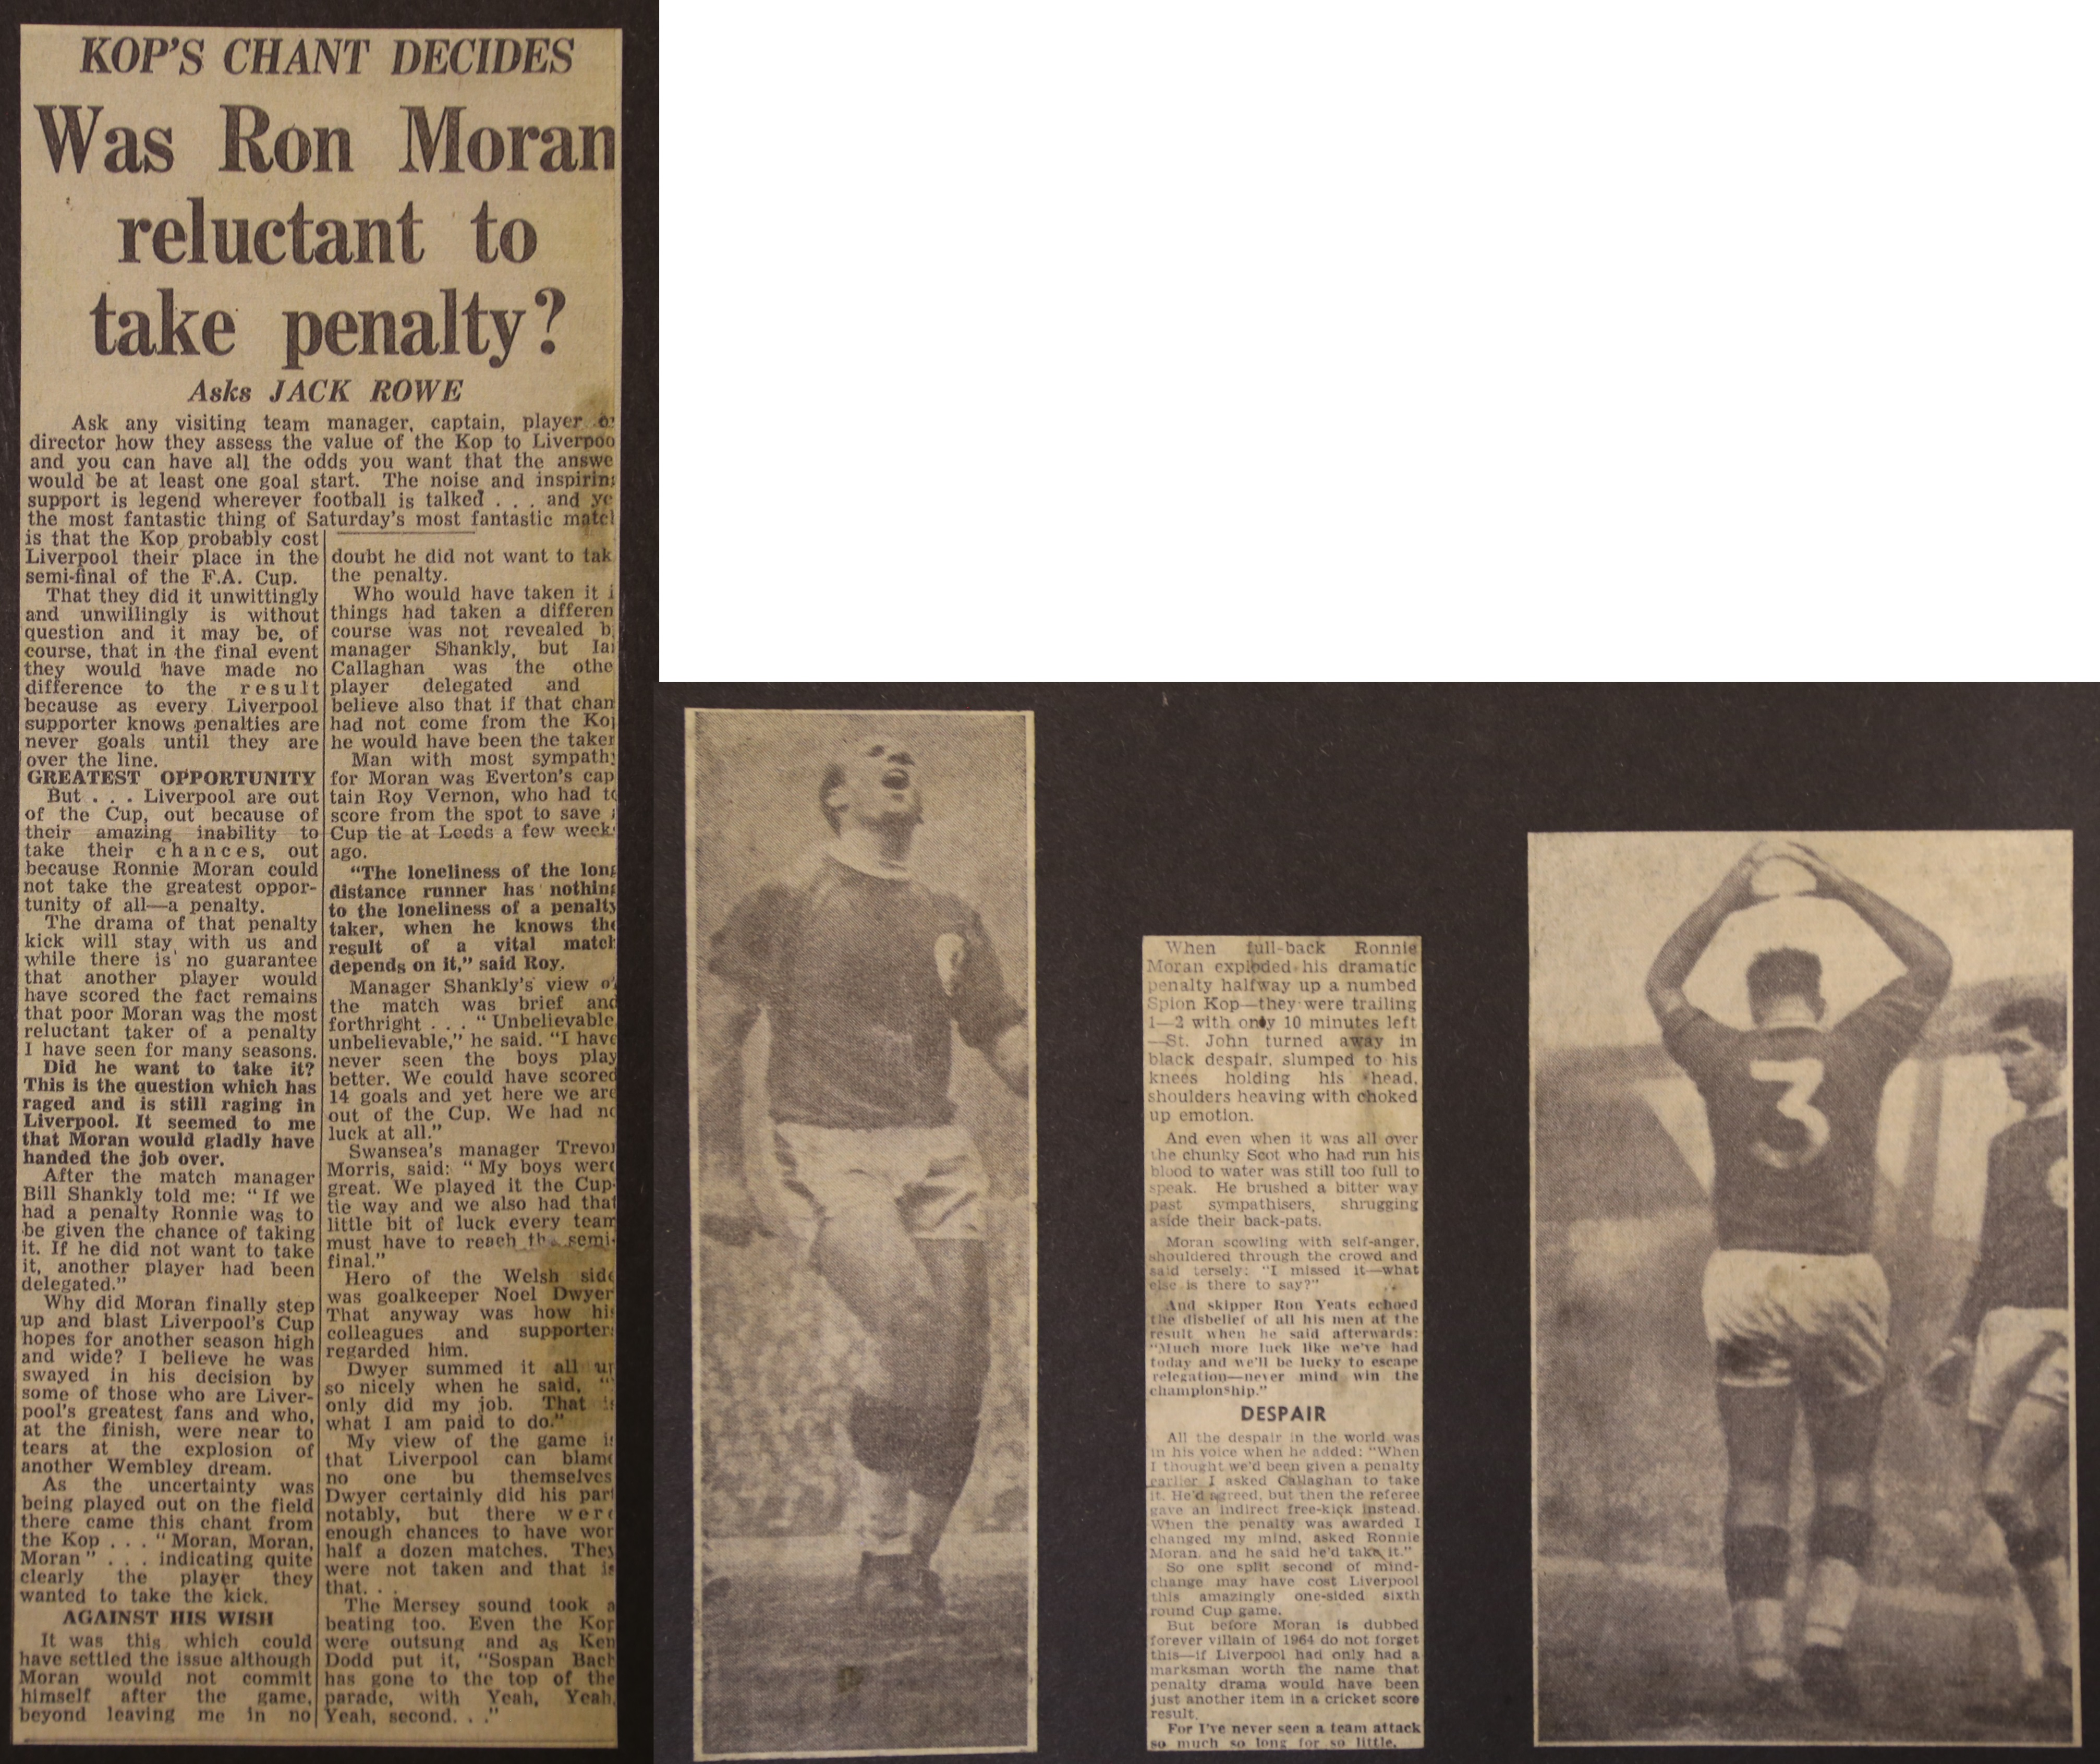 Was Moran reluctant to take the penalty? - 29 February 1964